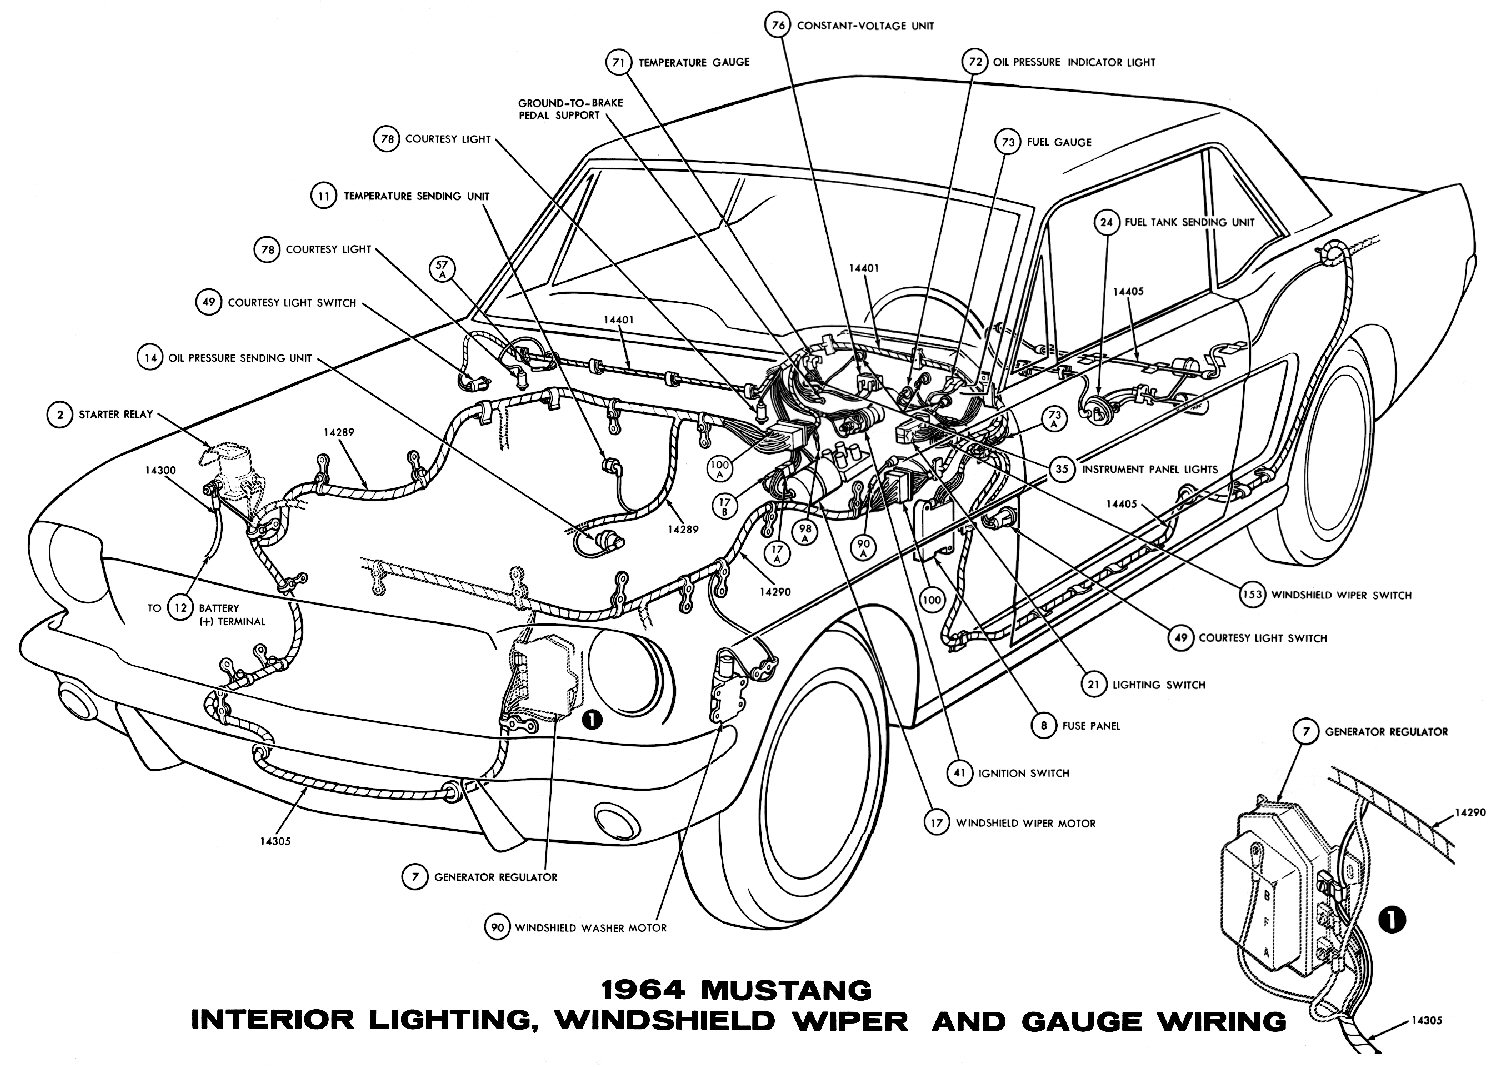 1964 mustang wiring diagrams average joe restoration 1964 mustang interior lights windshield wiper and gauges pictorial or schematic asfbconference2016